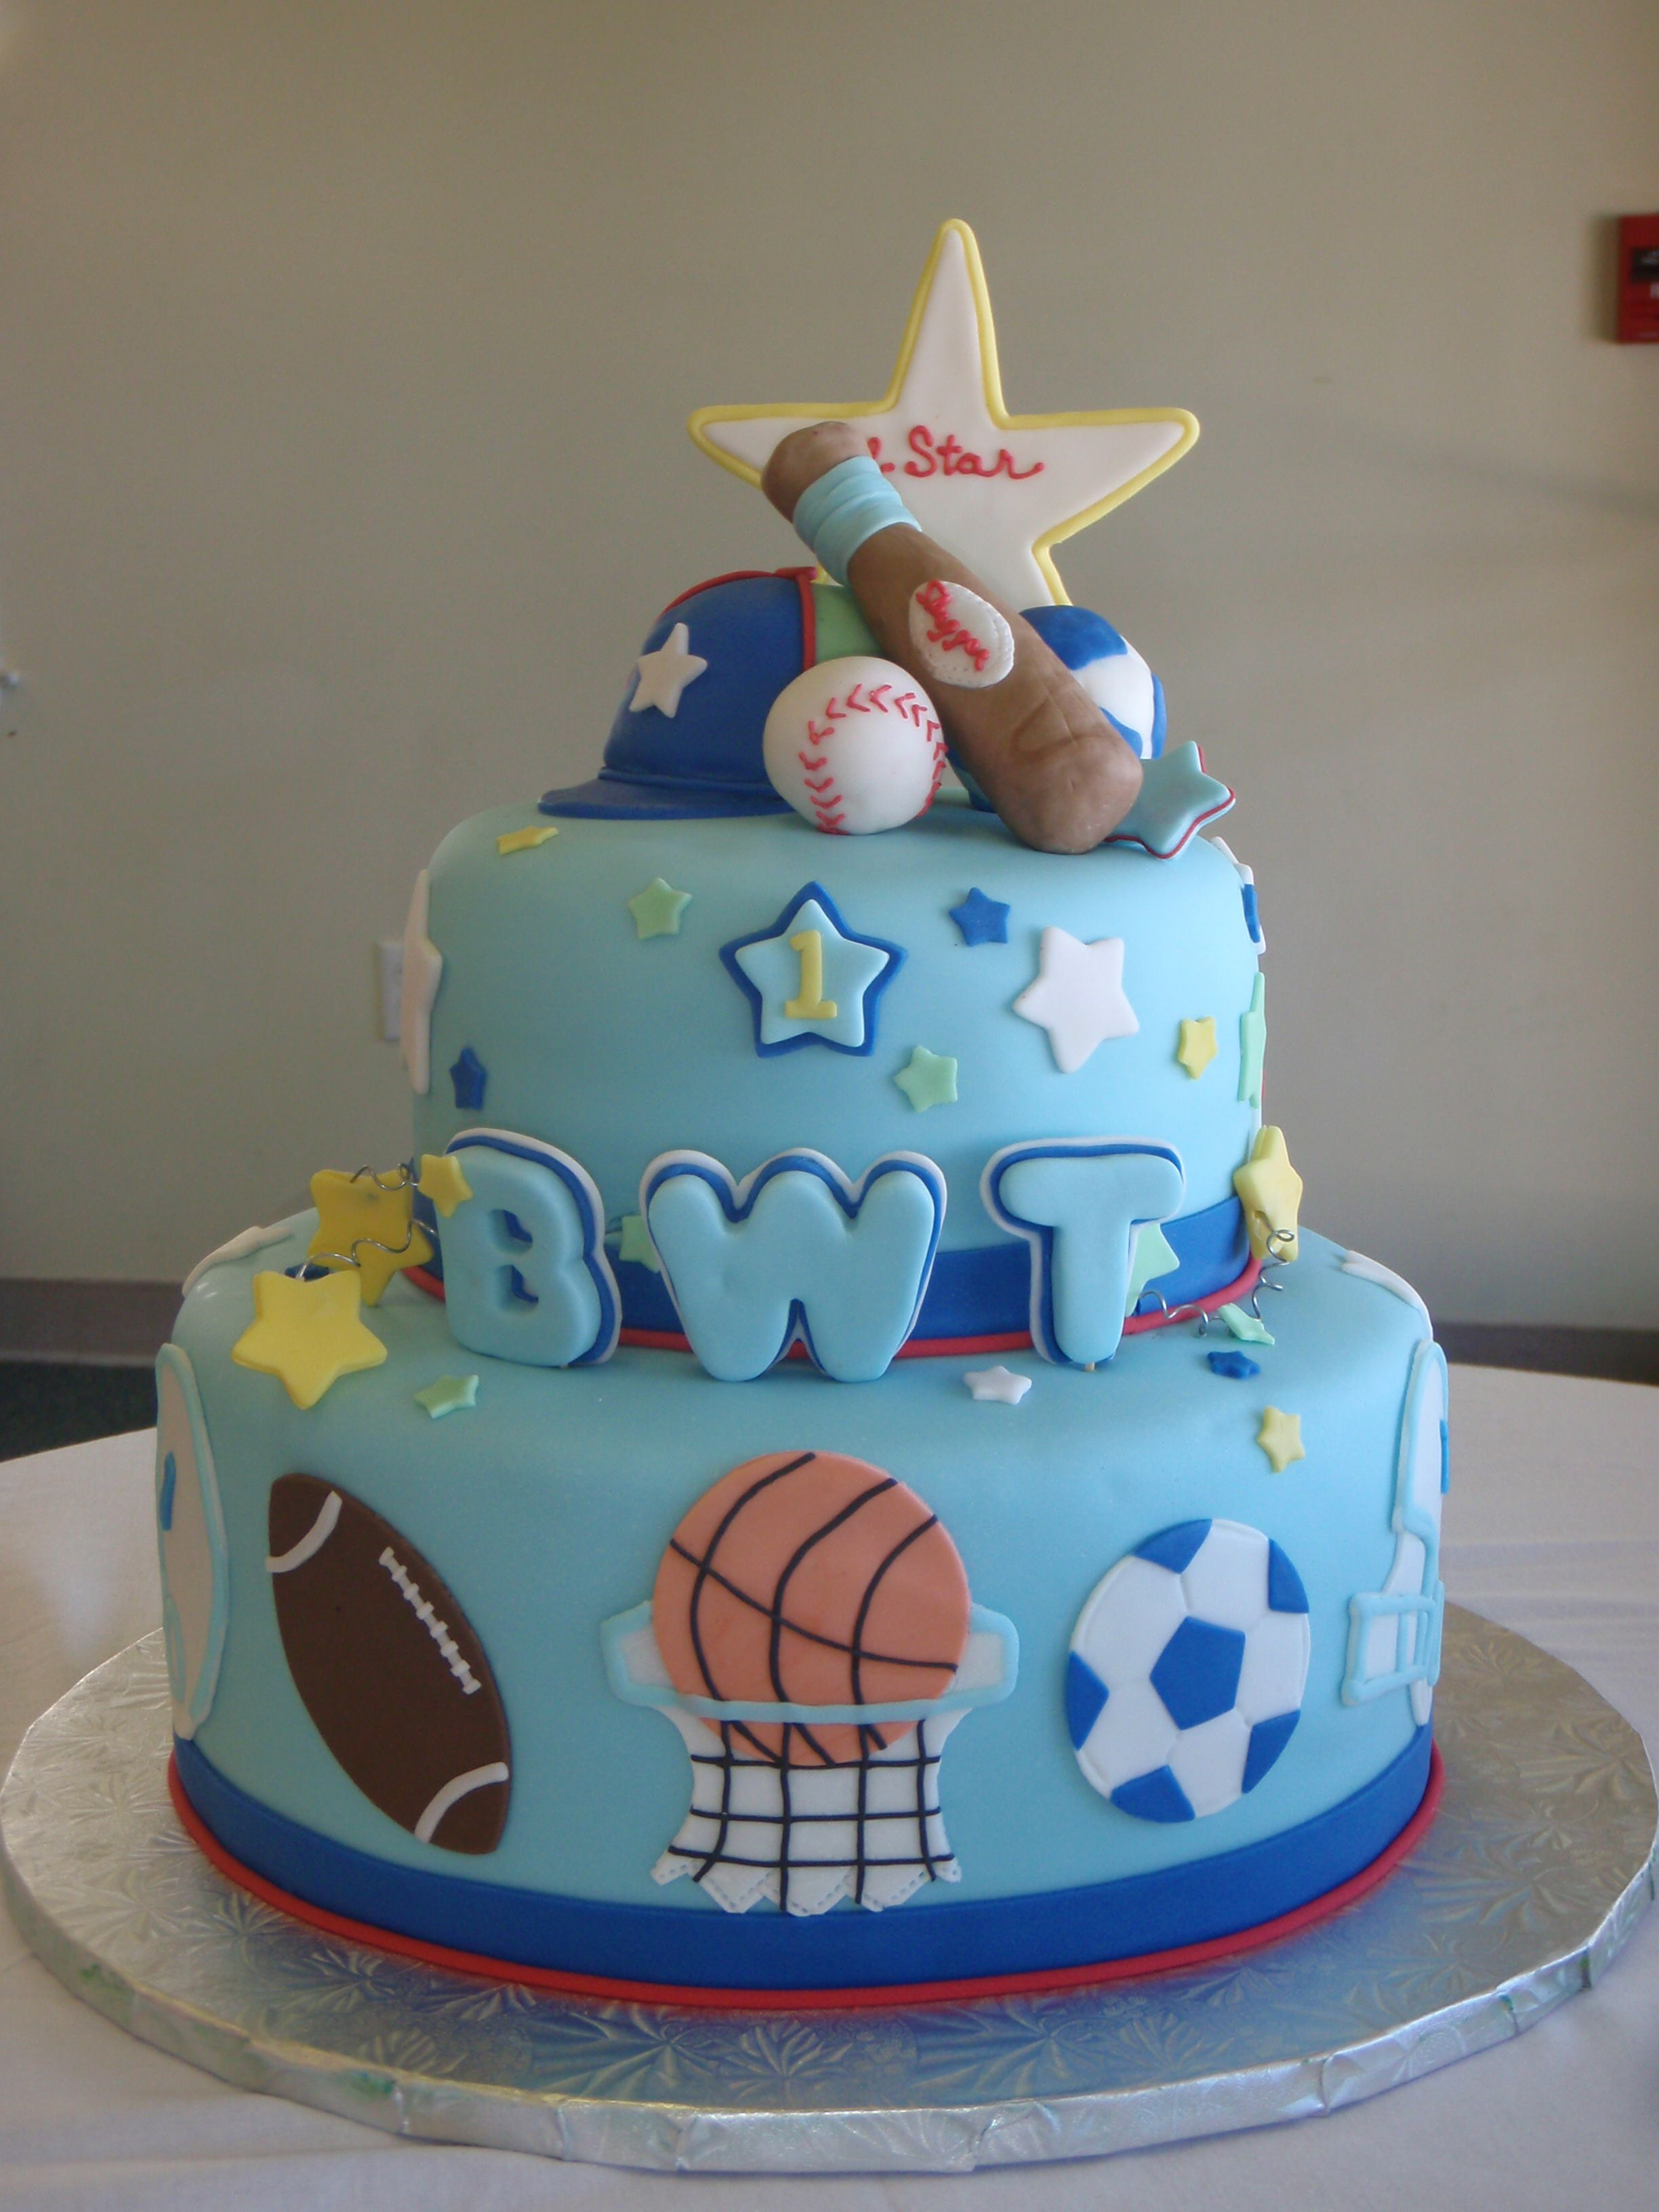 Baby Boy Birthday Cake Themes Image Inspiration of Cake and